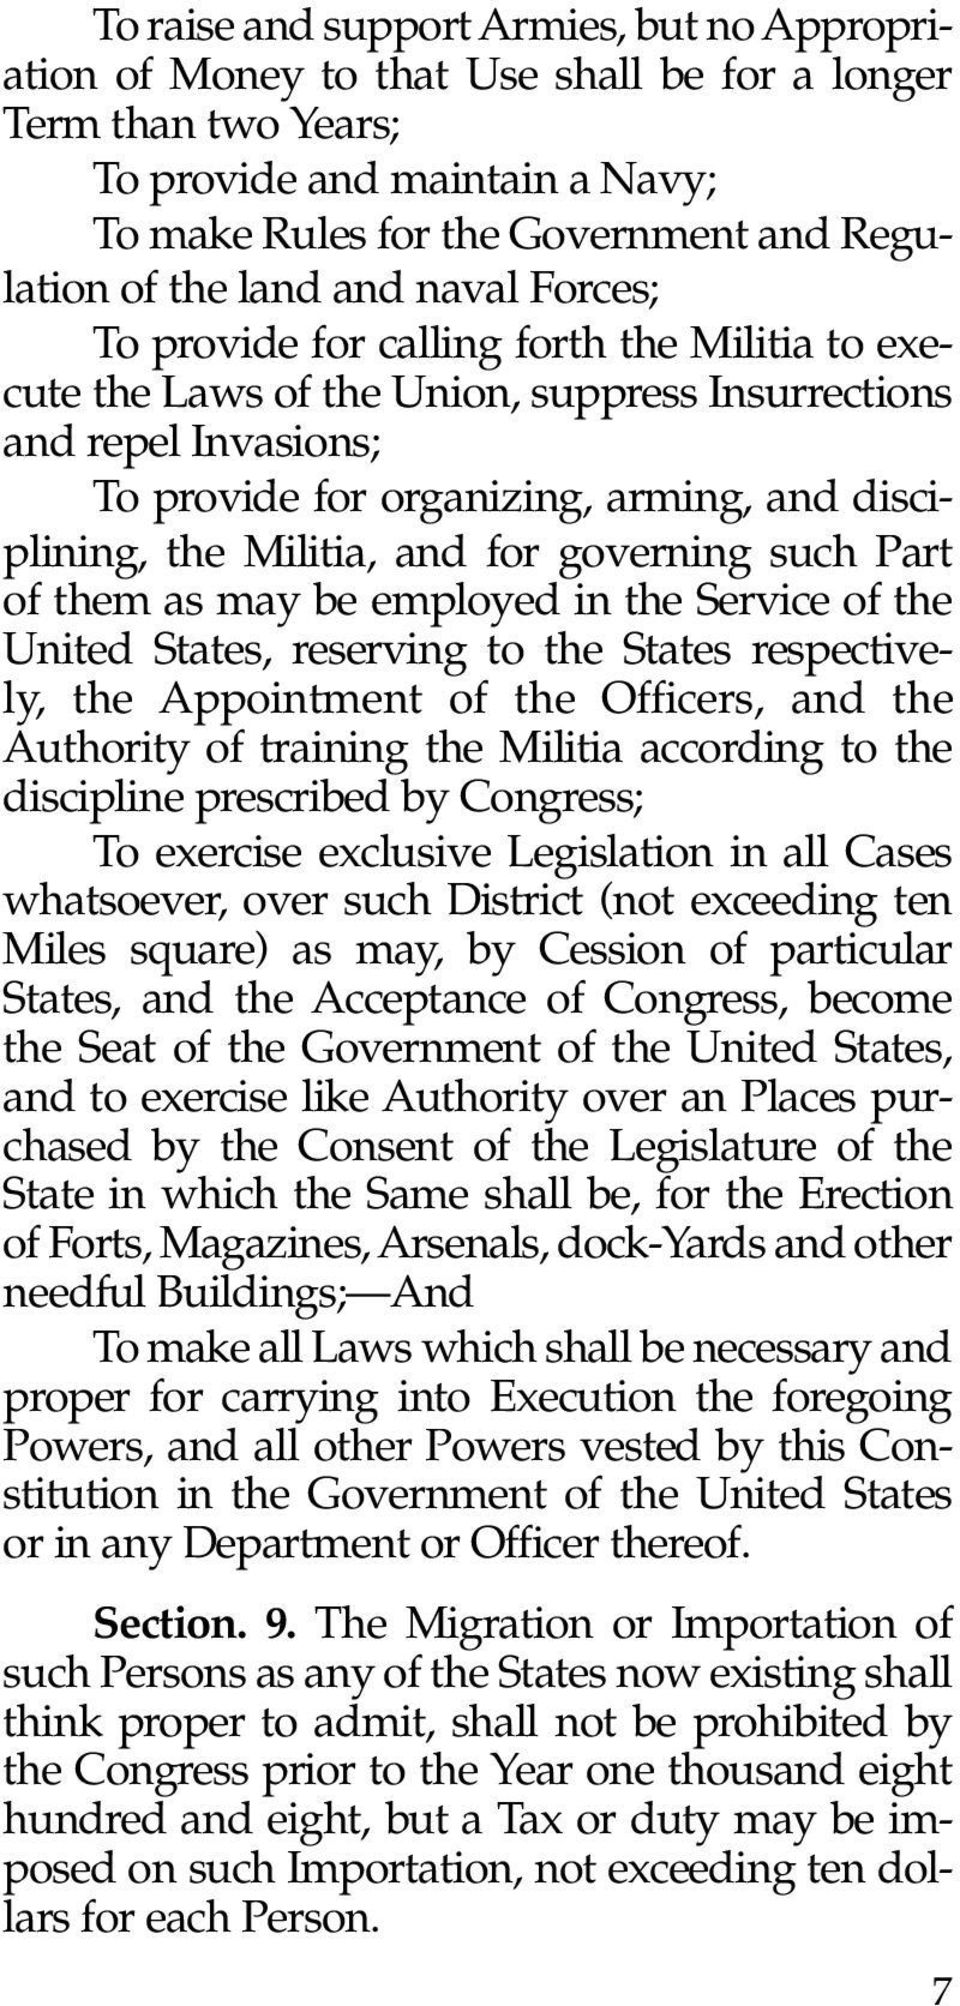 the Militia, and for governing such Part of them as may be employed in the Service of the United States, reserving to the States respectively, the Appointment of the Officers, and the Authority of